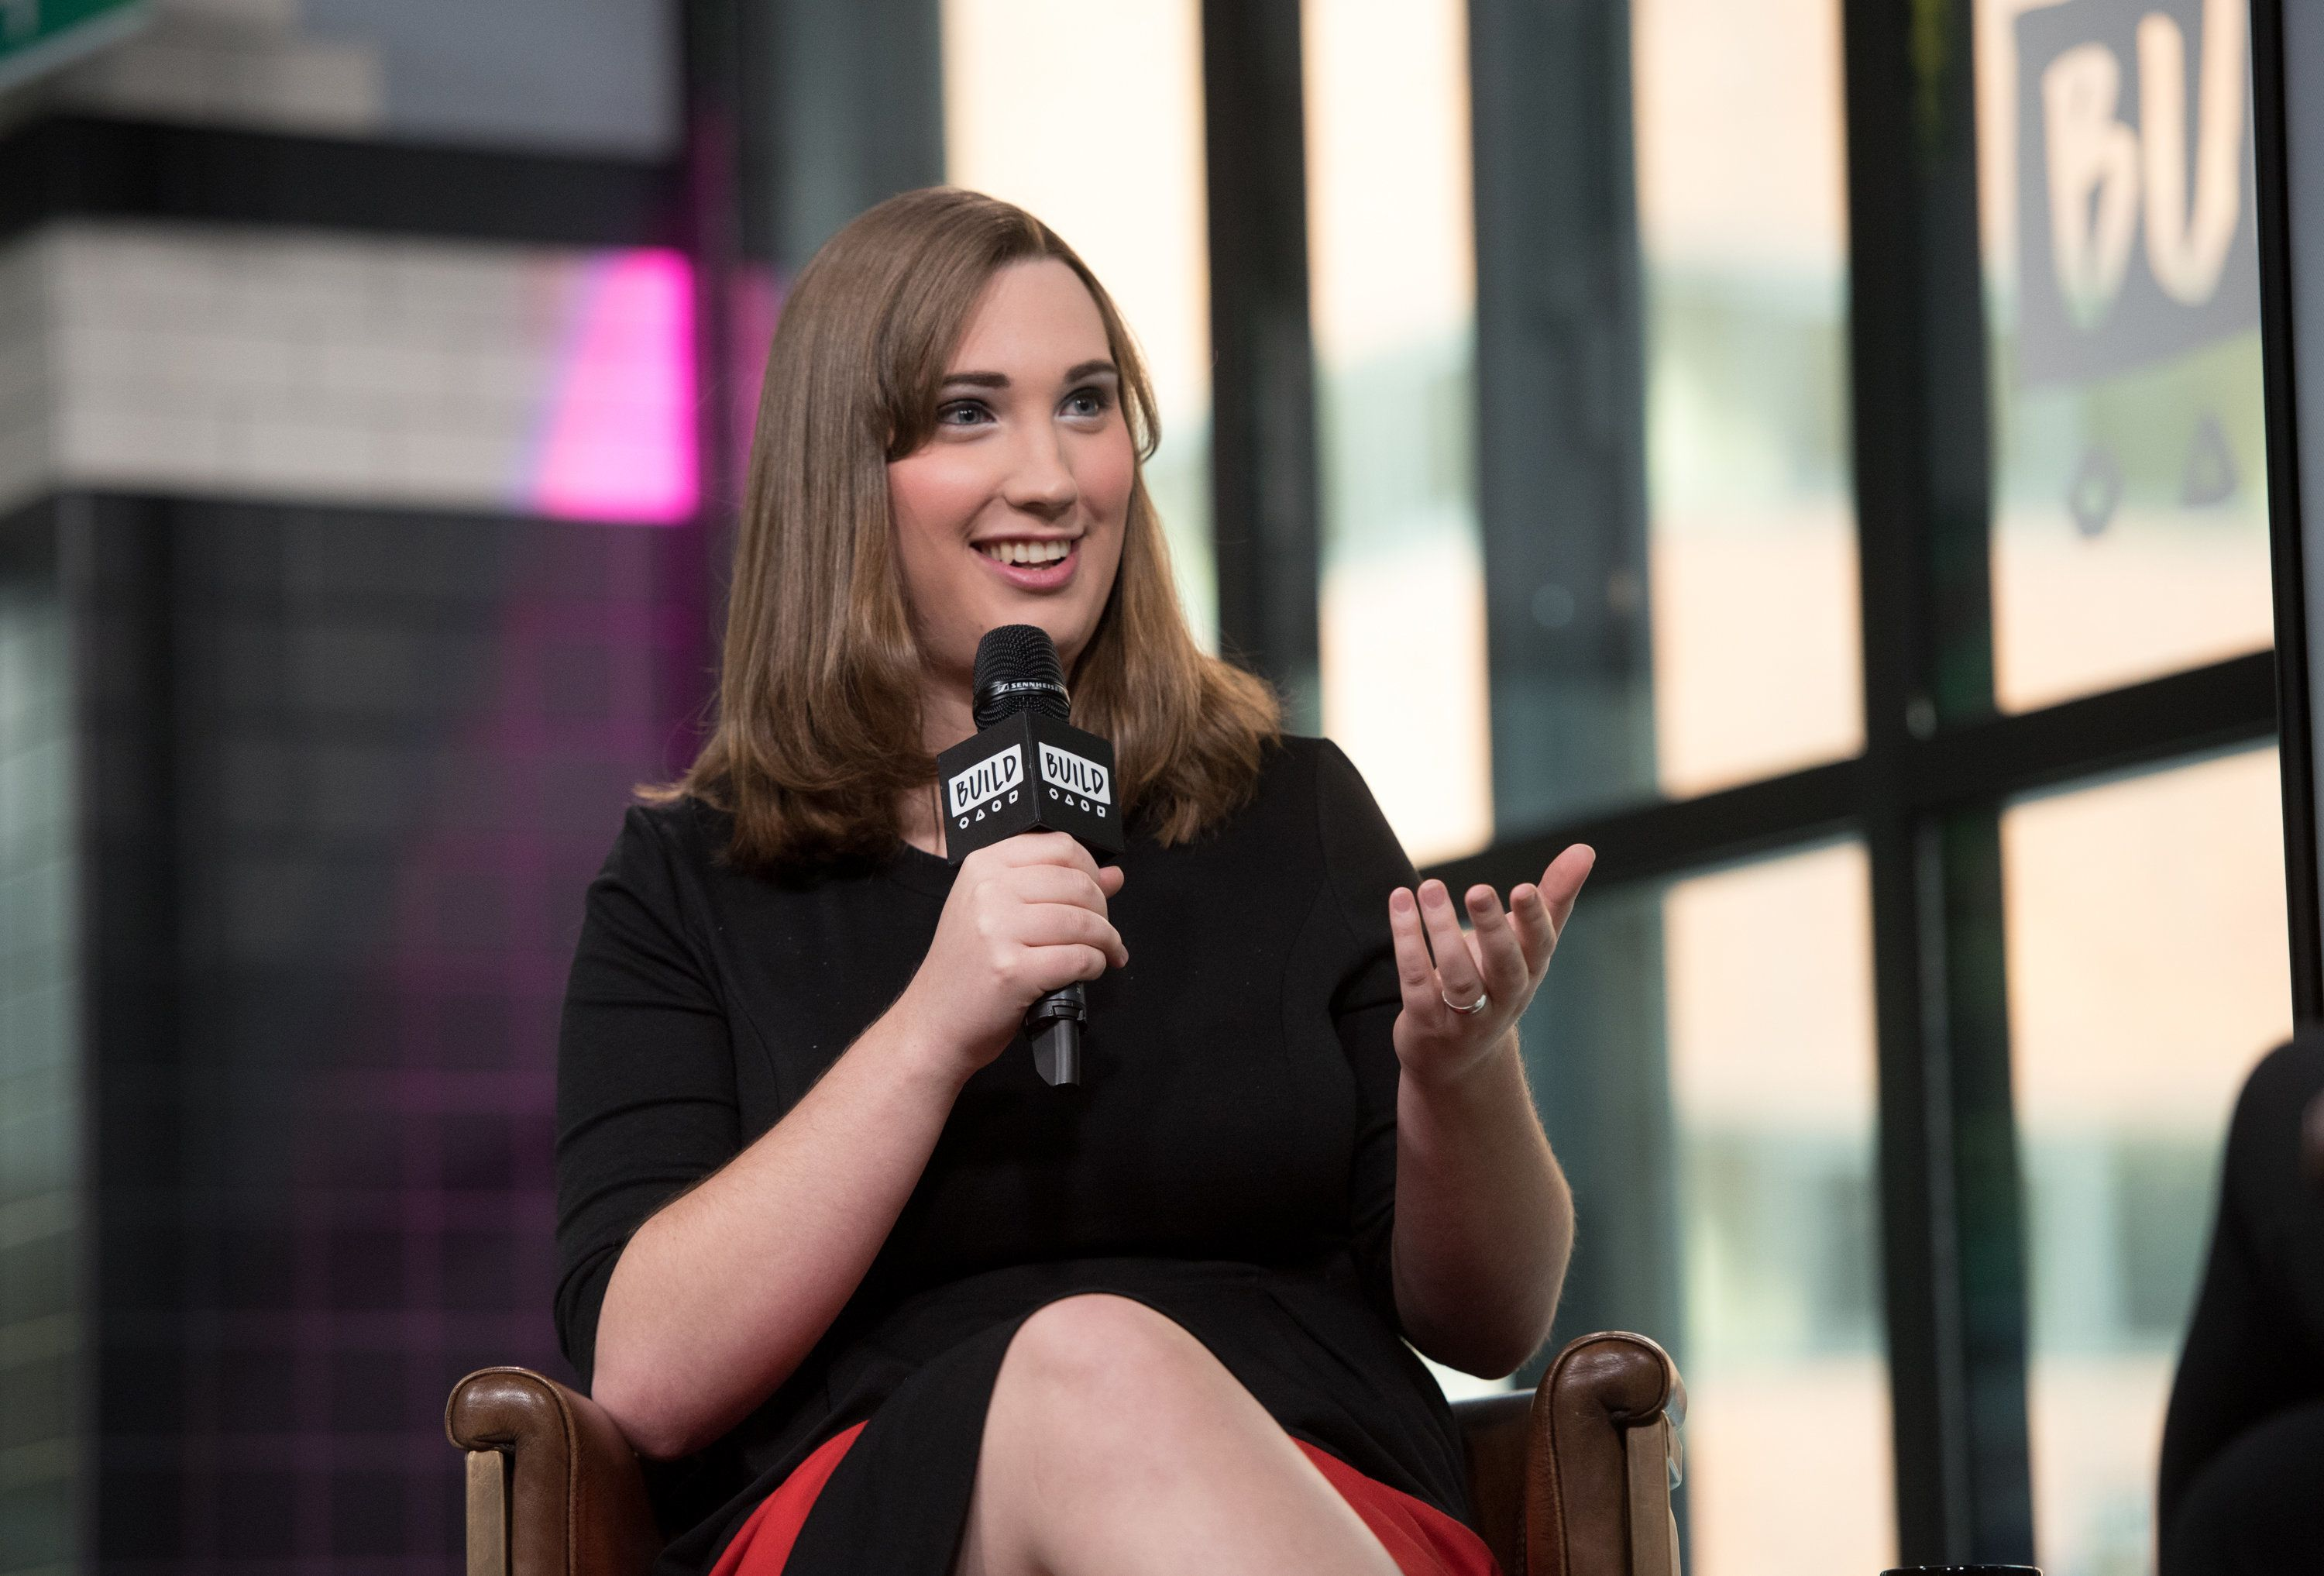 NEW YORK, NY - MARCH 06:  Sarah McBride visits Build Series to discuss 'Tomorrow Will Be Different: Love, Loss, and the Fight for Trans Equality' at Build Studio on March 6, 2018 in New York City.  (Photo by Noam Galai/Getty Images)